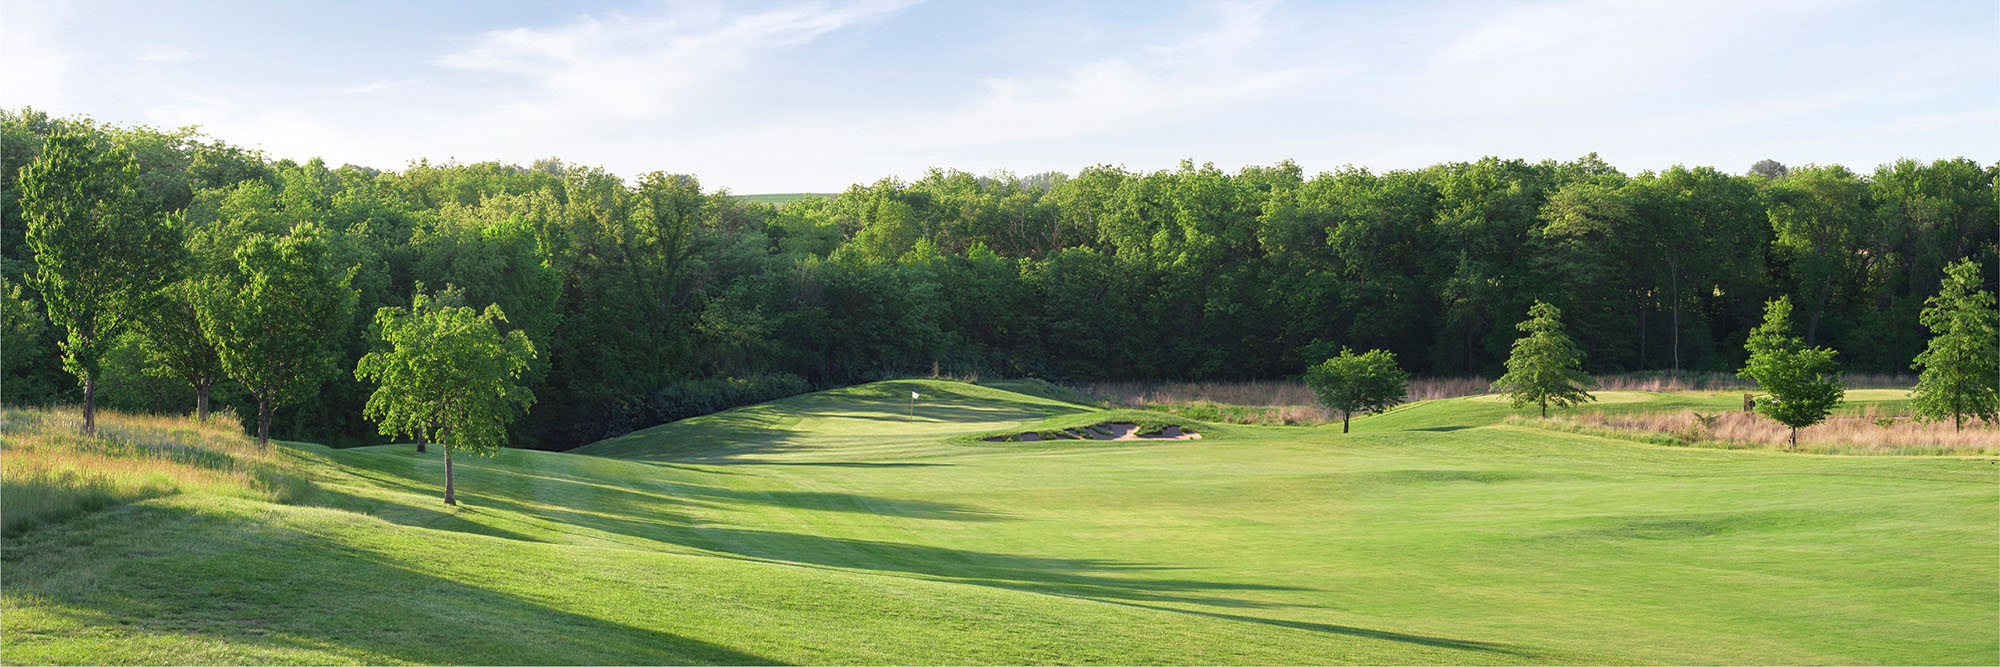 Golf Course Image - Arbor Links No. 1